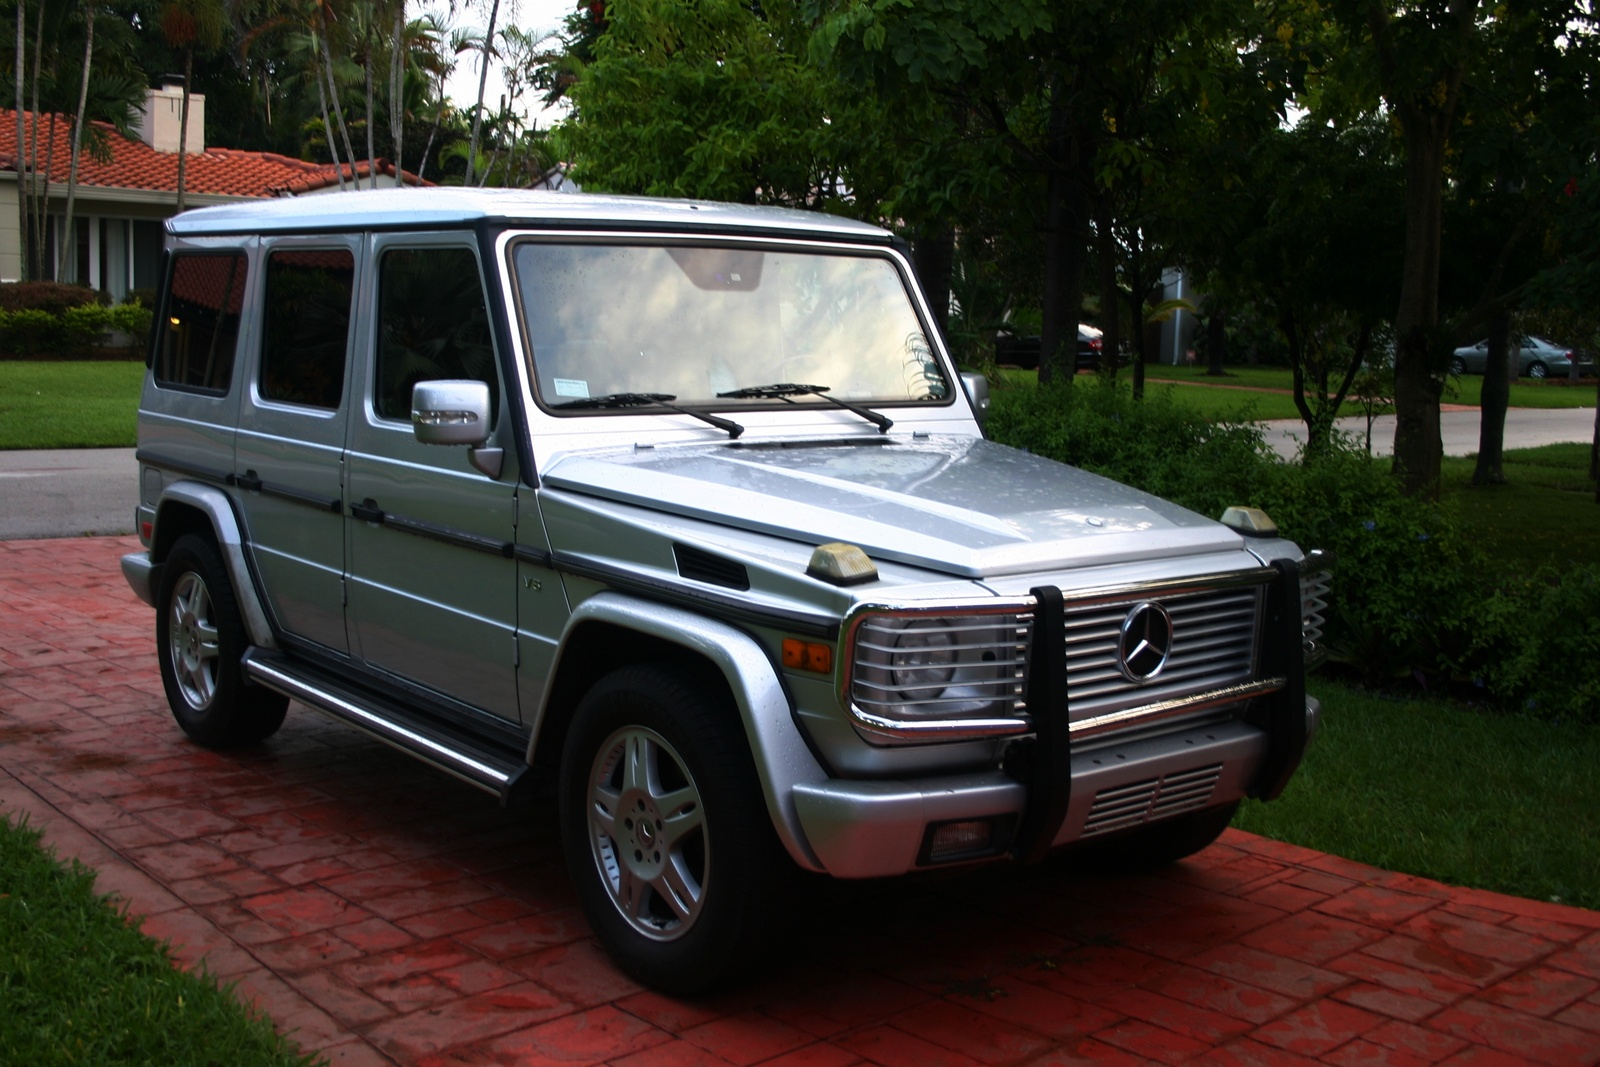 2003 mercedes benz g class pictures cargurus for 2003 mercedes benz suv